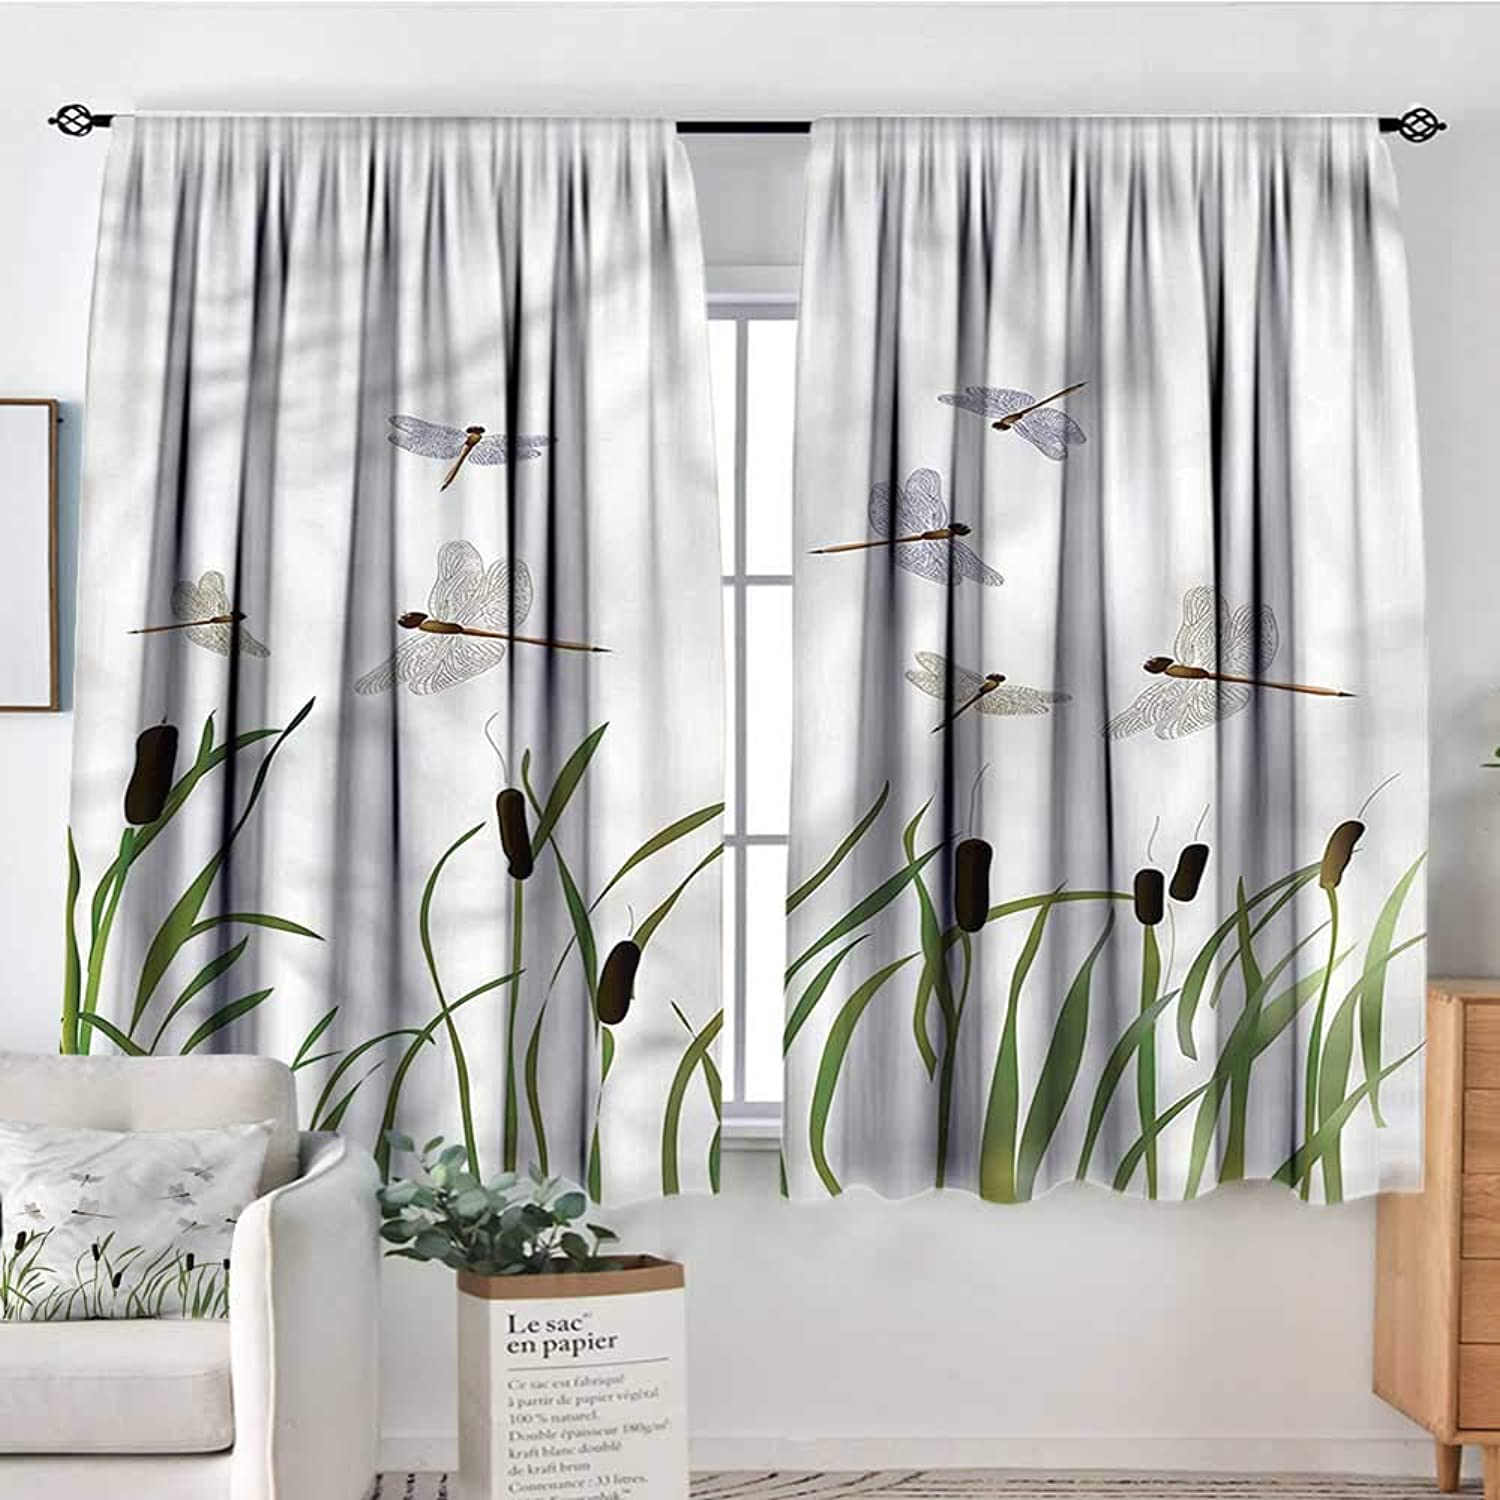 Dragonfly,Backout Curtain Set Tall Reeds Botanical Art 52 x63  Print Curtains for Toddes Iving Room